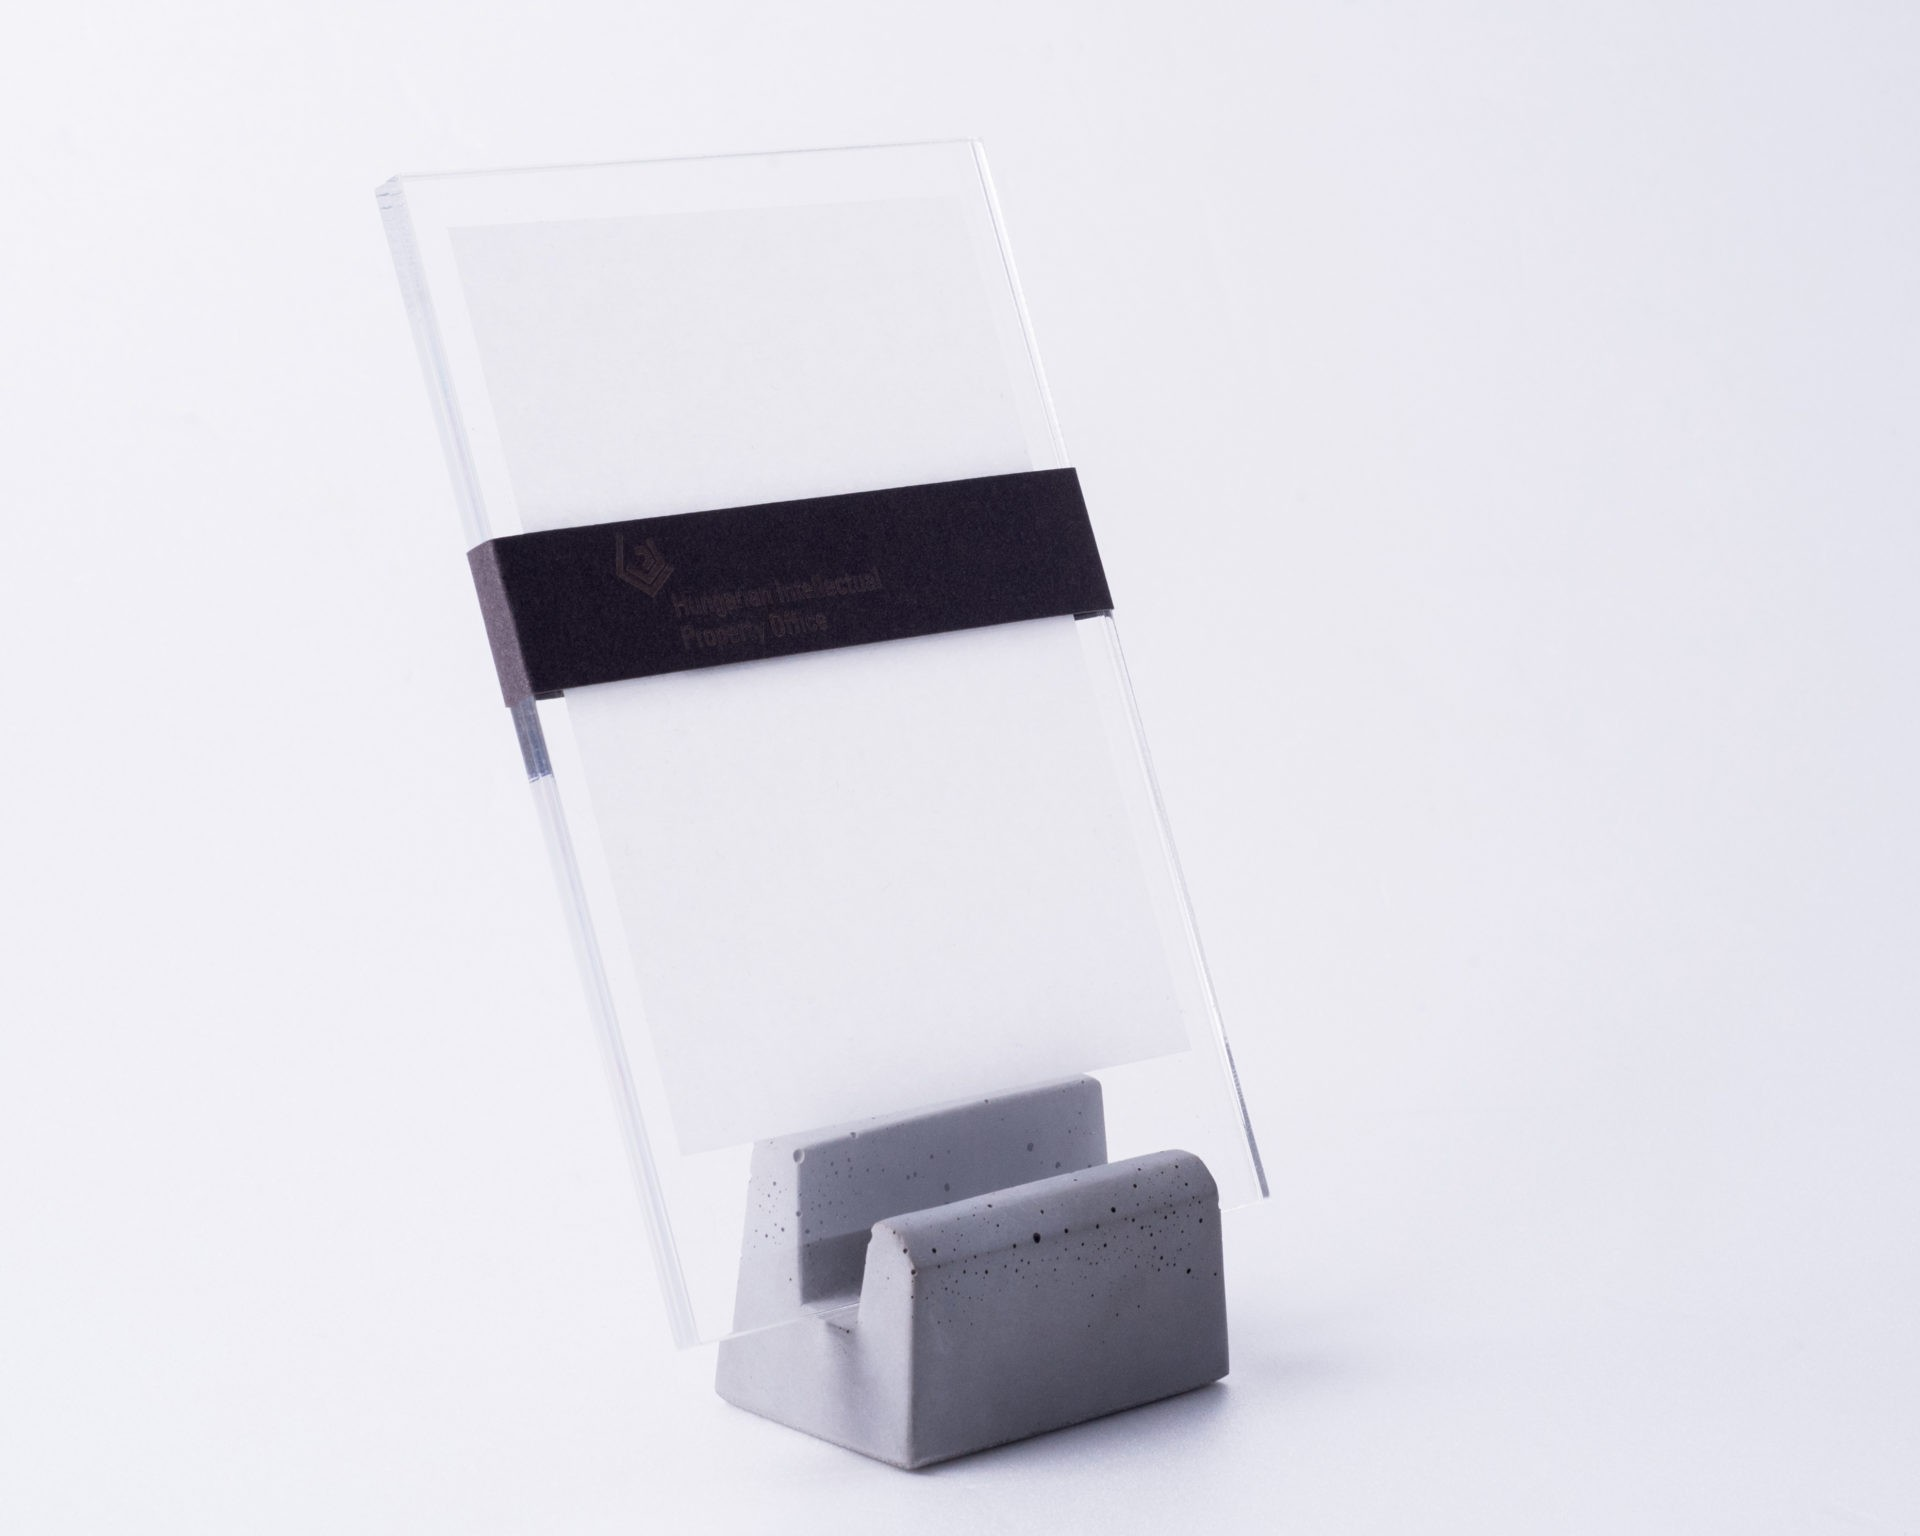 Minimalist photo holder made of concrete